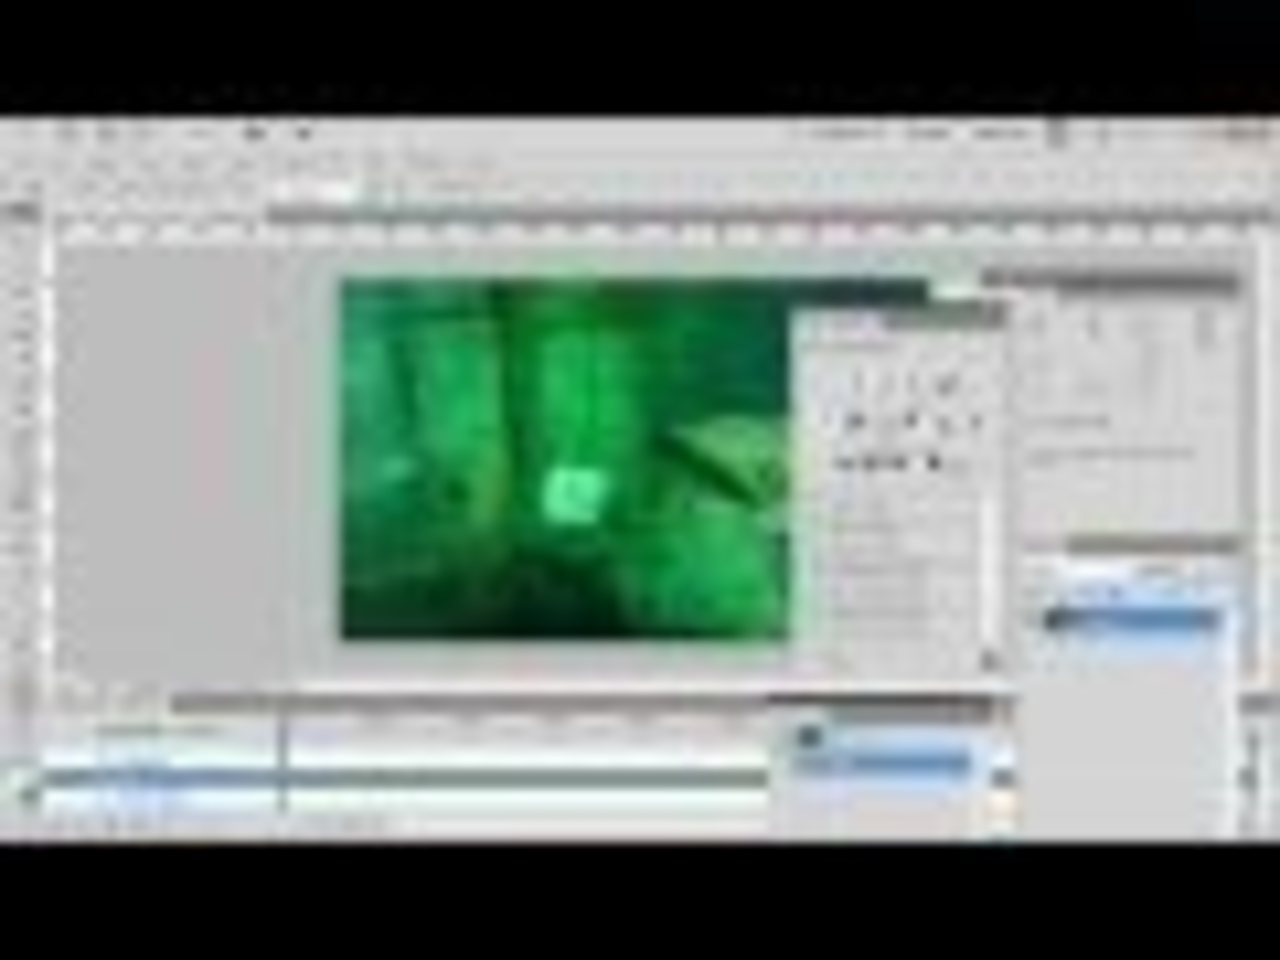 How to correct colour in underwater video using Adobe Photoshop CS5.5 - Post by Ksso